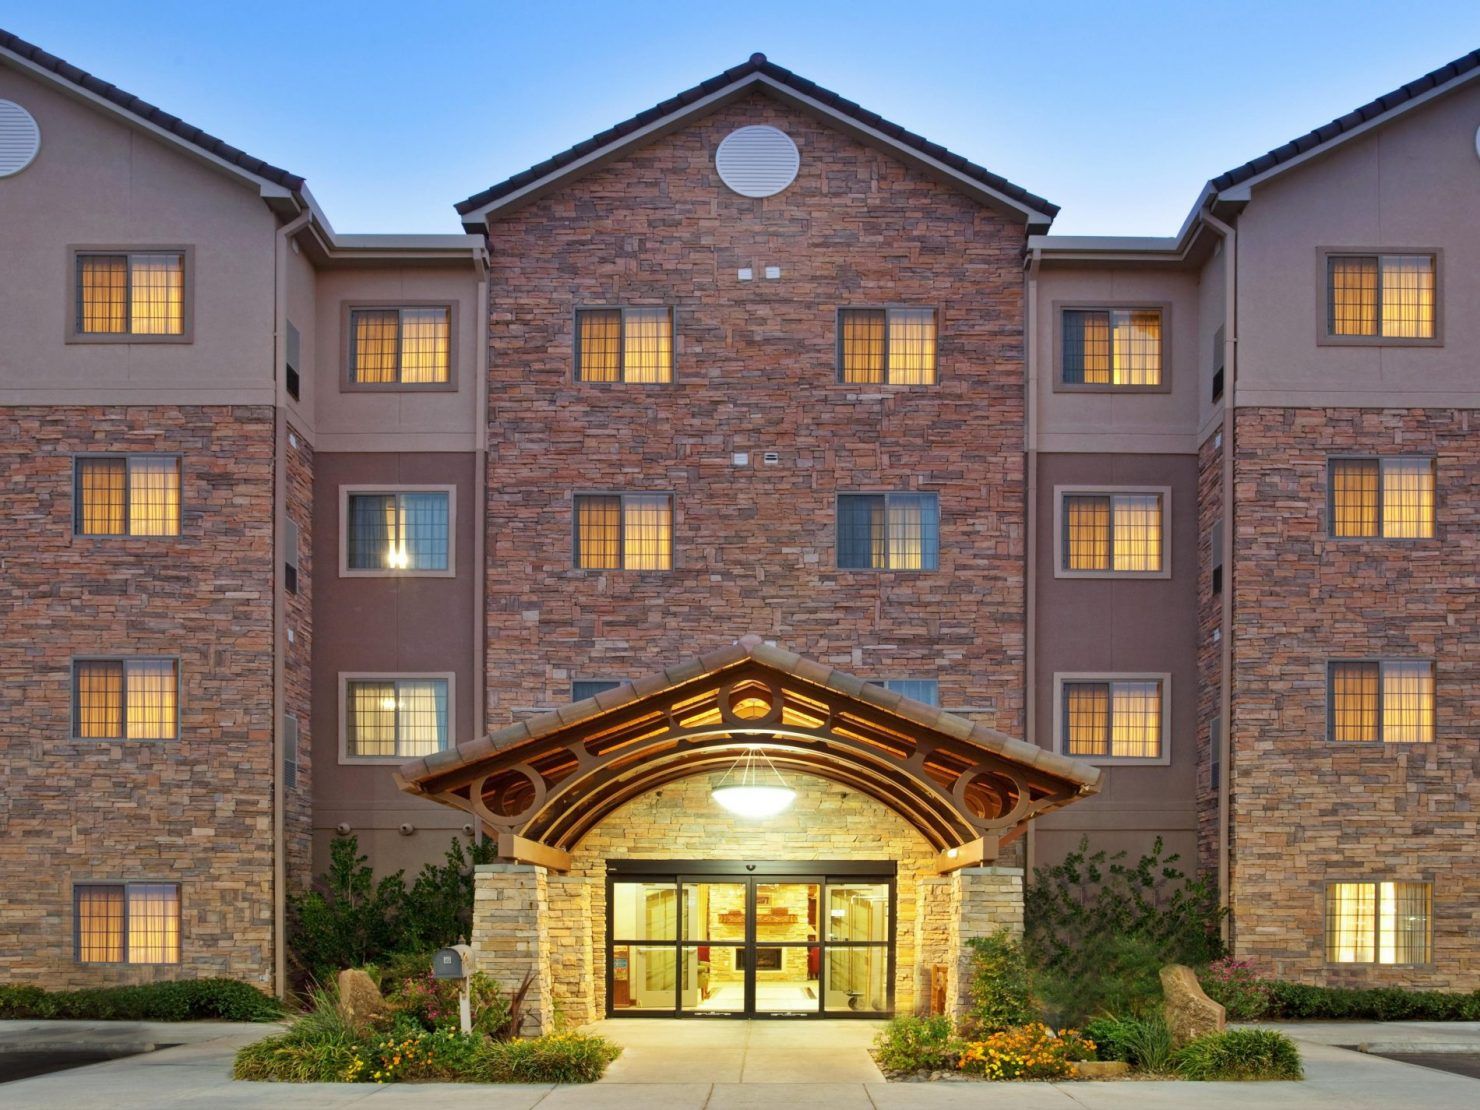 staybridge-suites-las-cruces-Front-Entry